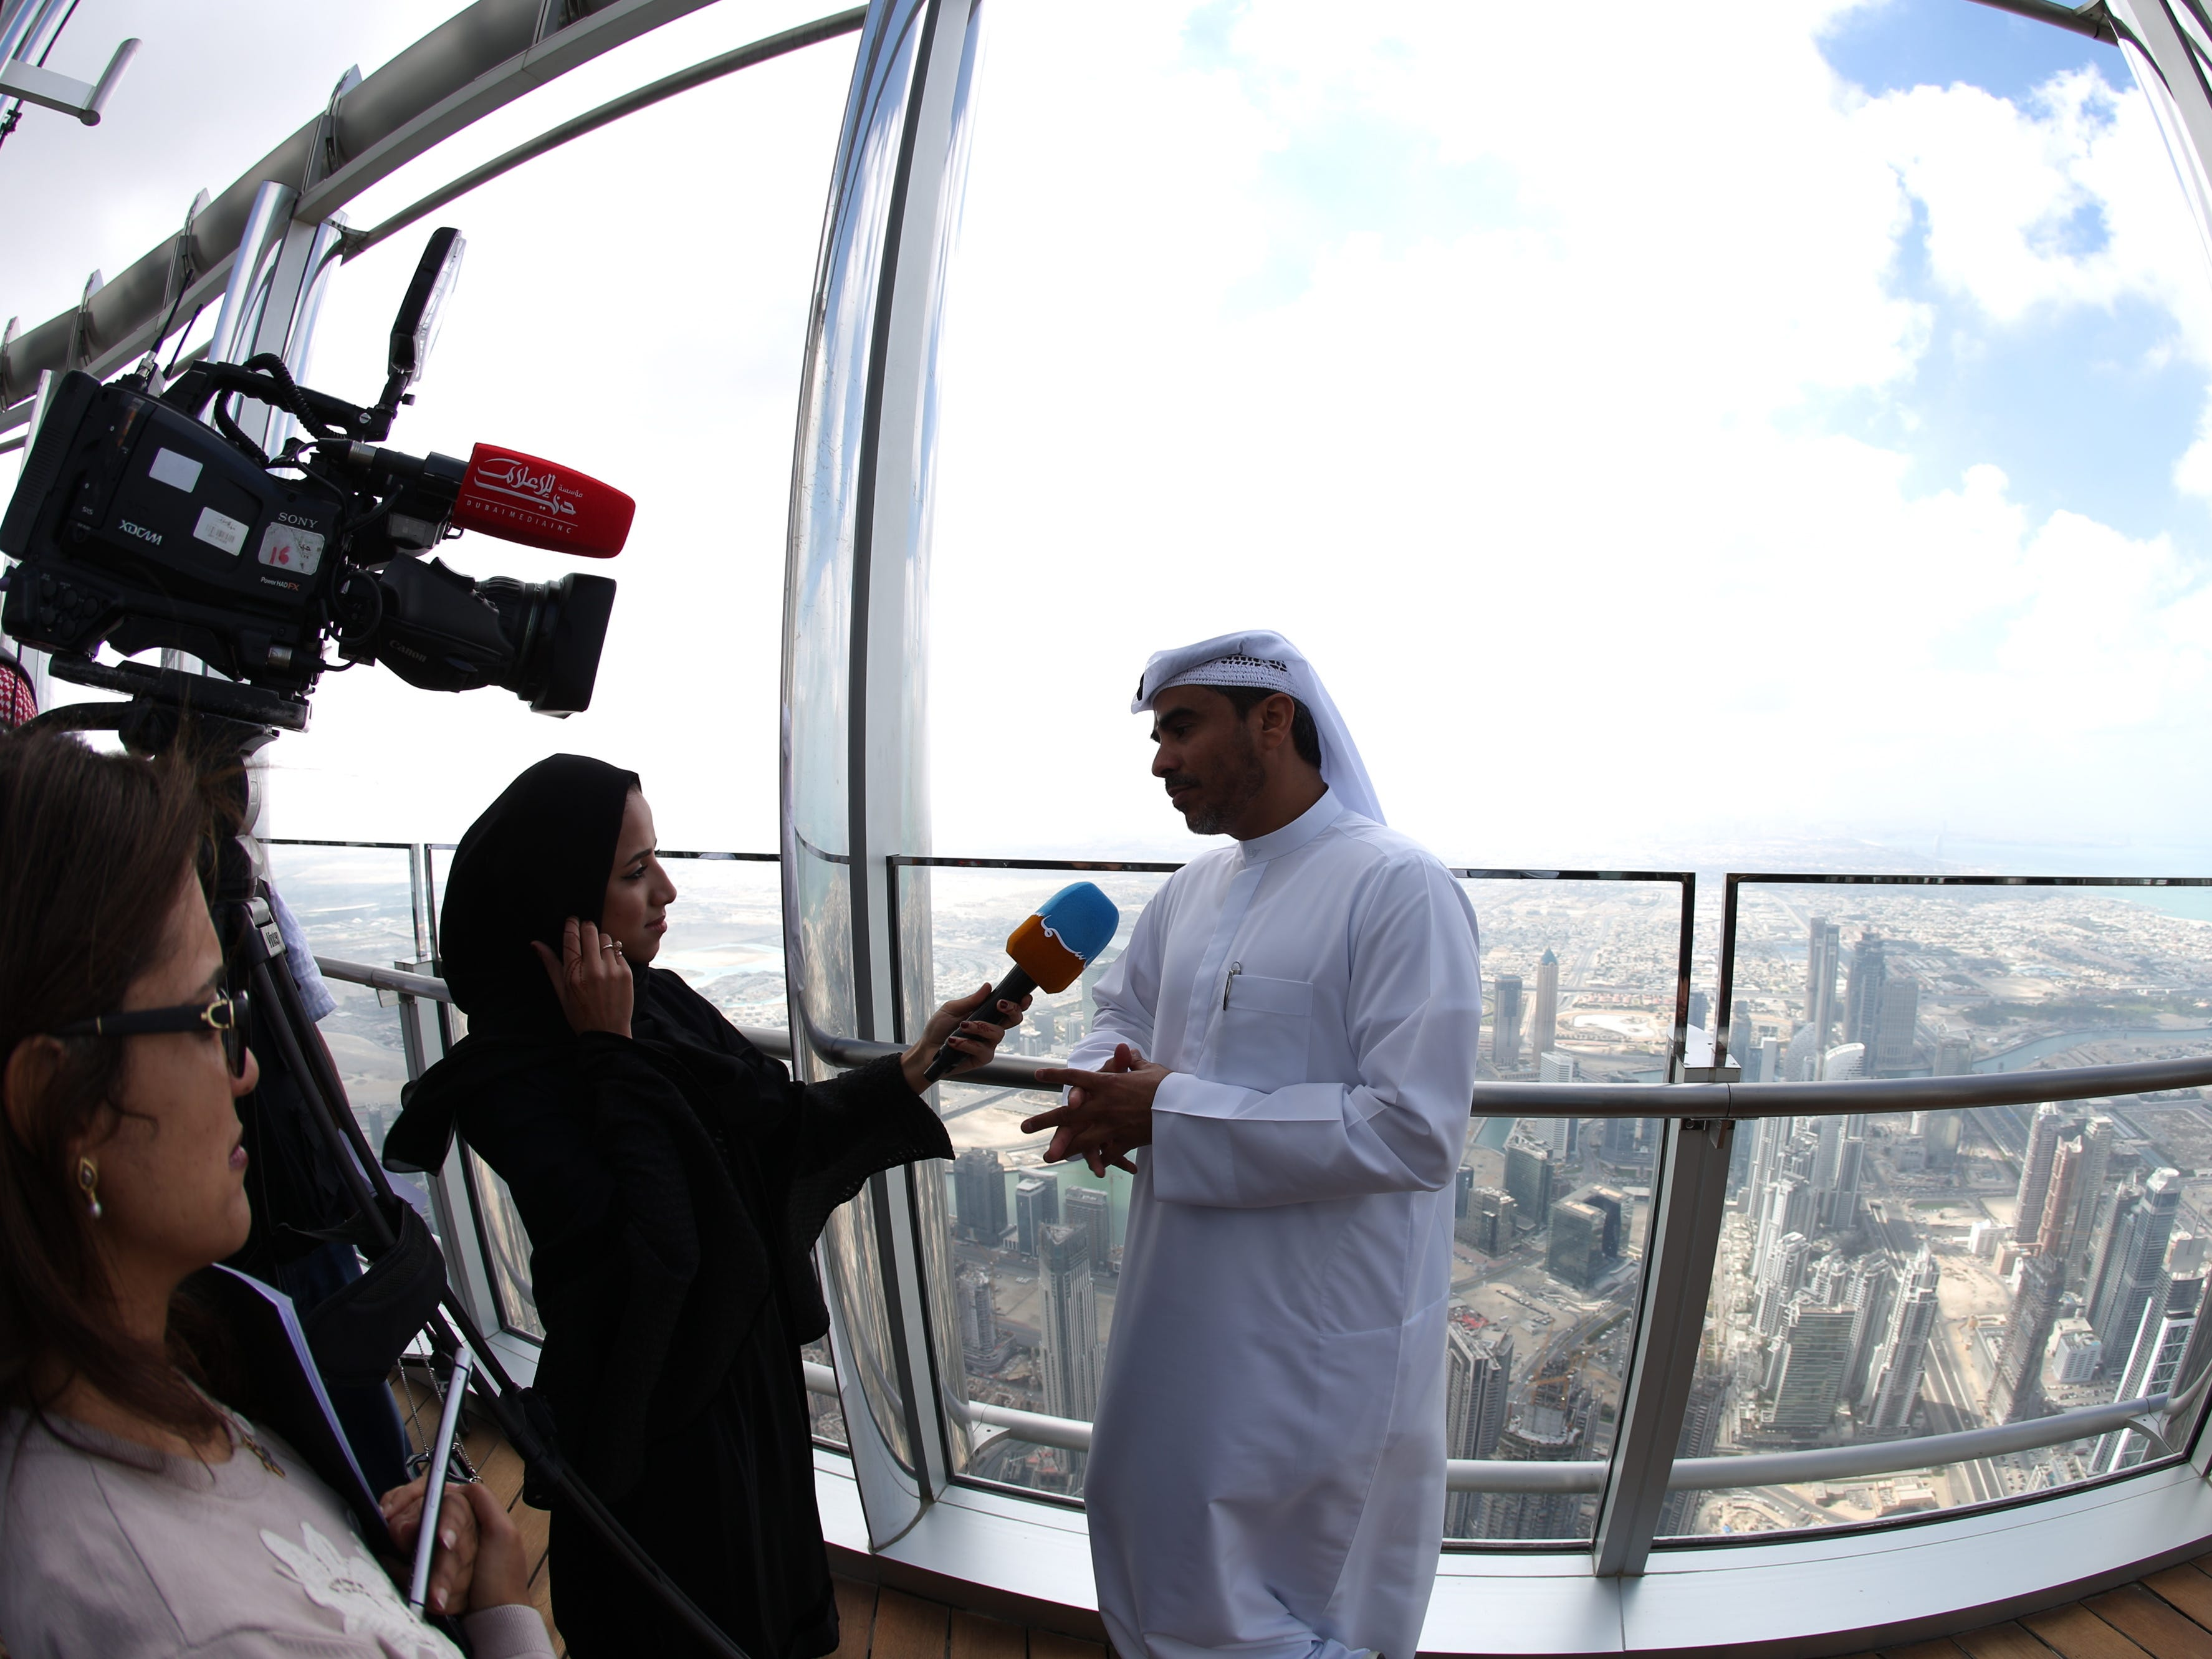 epa07366408 A picture taken with a fish eye lens shows Ahmad Al Falasi, Executive Director Emaar Properties talking to media at the new highest lounge in the world at Burj Khalifa in Dubai, United Arab Emirates, 13 February 2019. Ahmad Al Falasi, Executive Director Emaar Properties announced during media briefing the opening of highest lounge in the world at Burj Khalifa which is located at 152, 153 and 154 floor which have distinctive settings each assuring never before seen views of the city.  EPA-EFE/ALI HAIDER ORG XMIT: XAH001